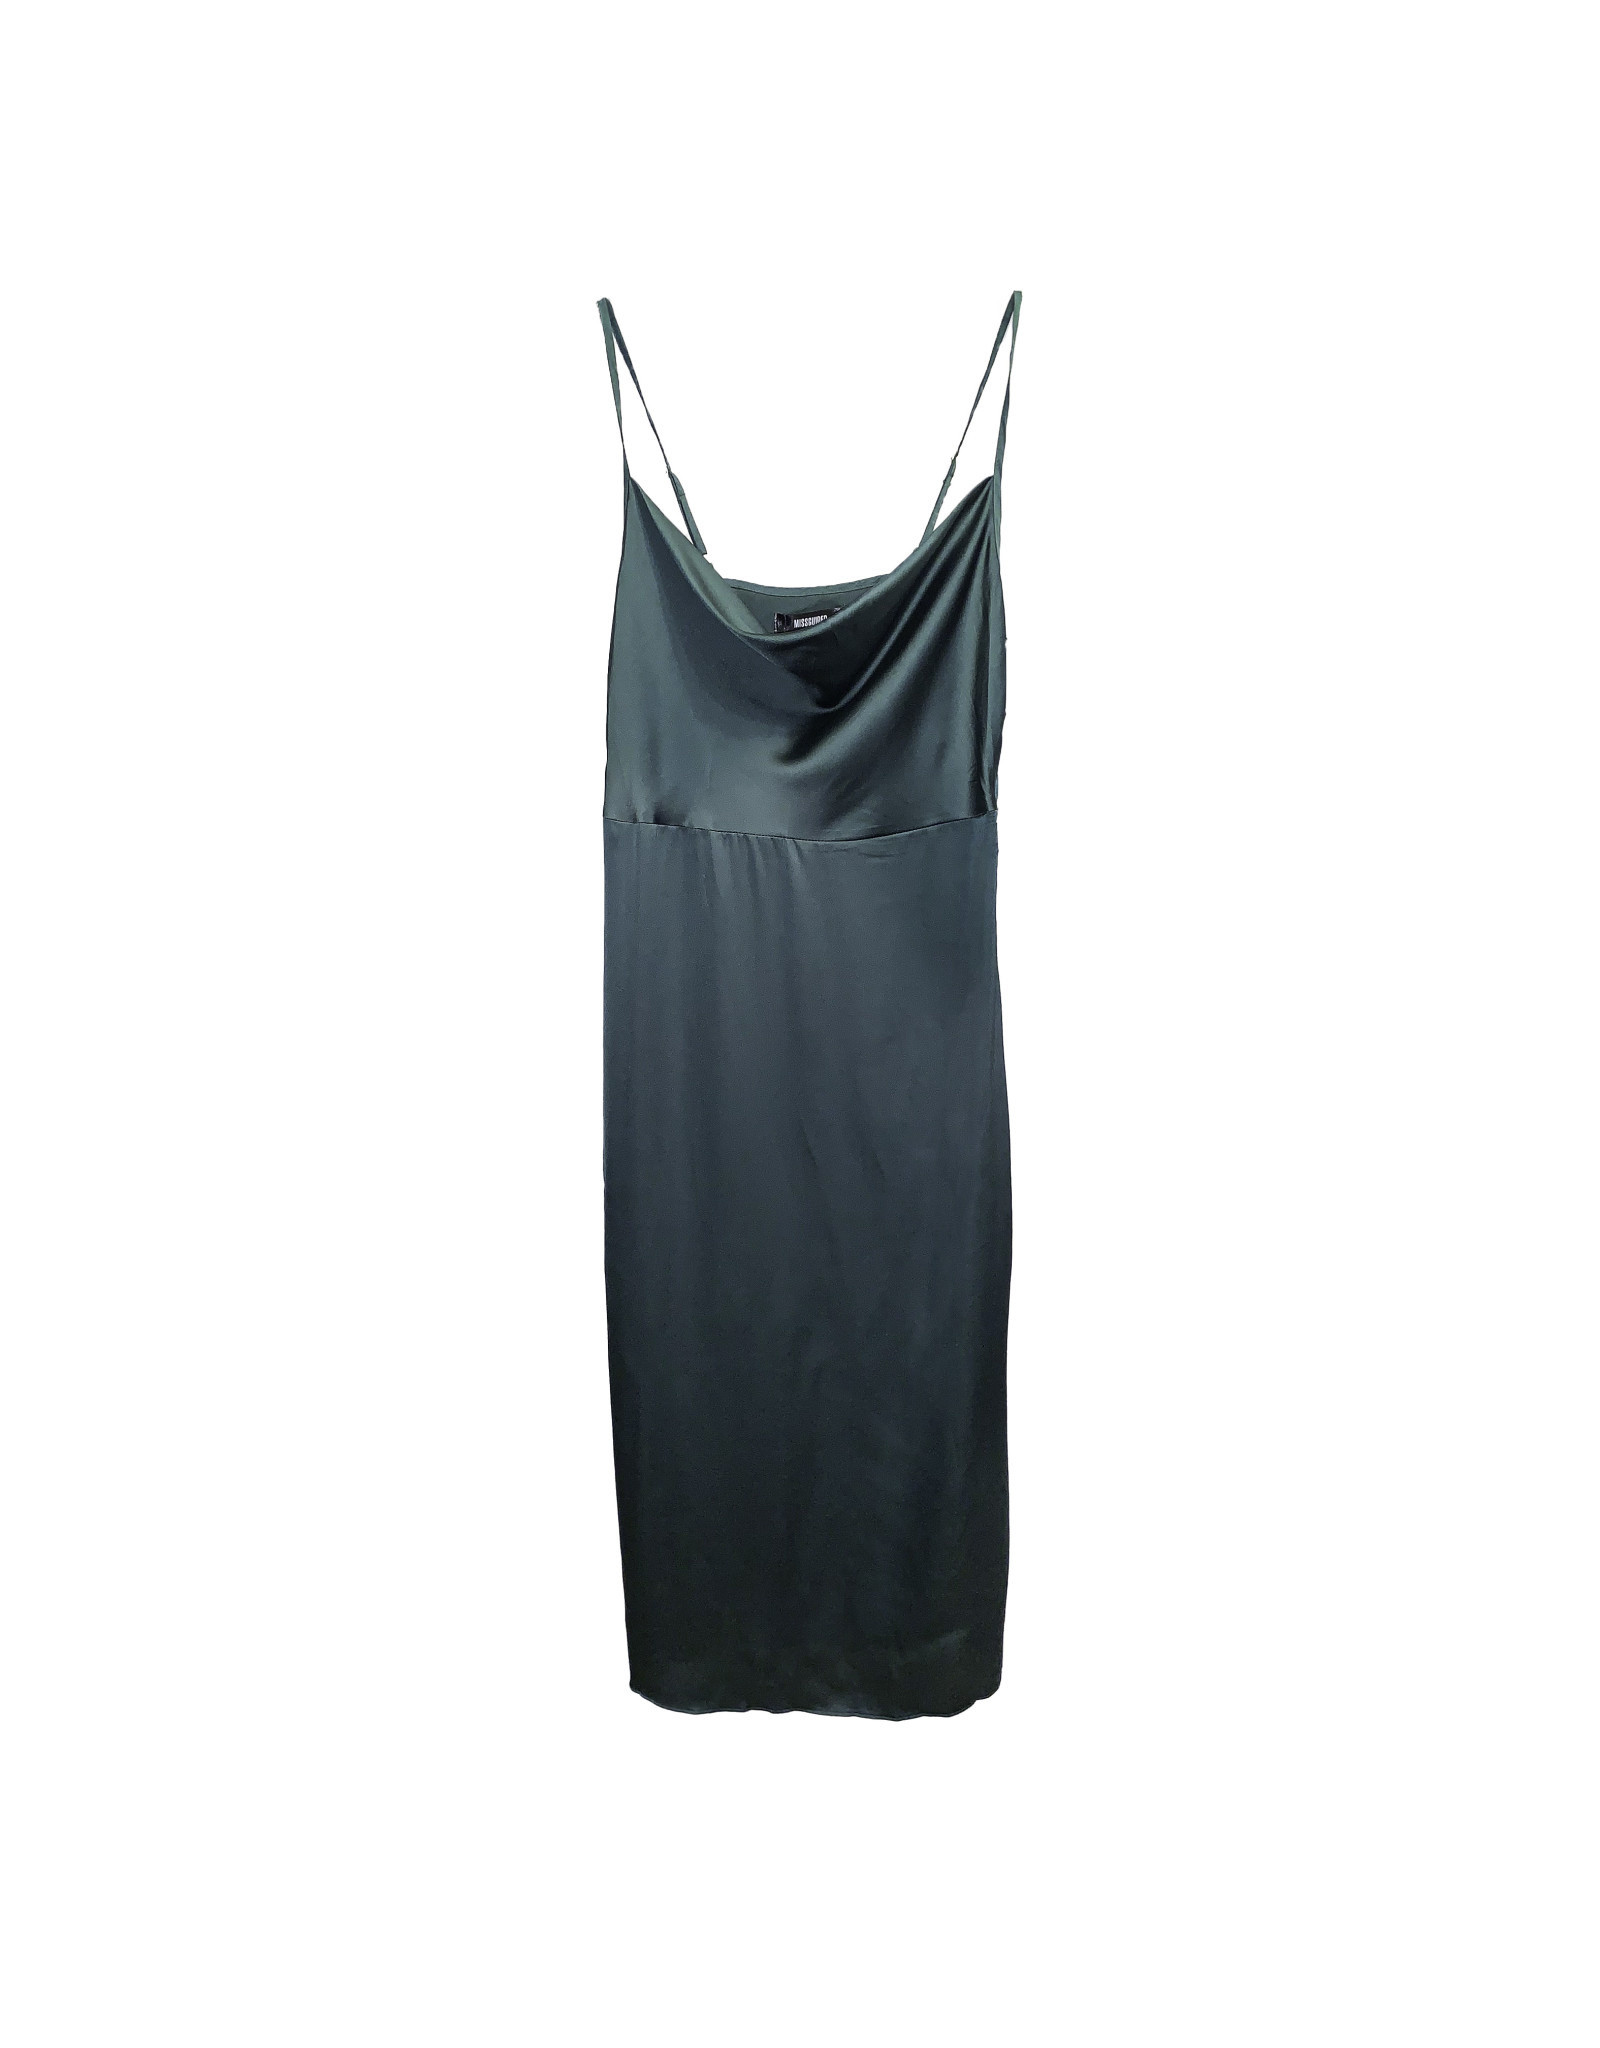 MISSGUIDED MISSGUIDED Green Slip Dress